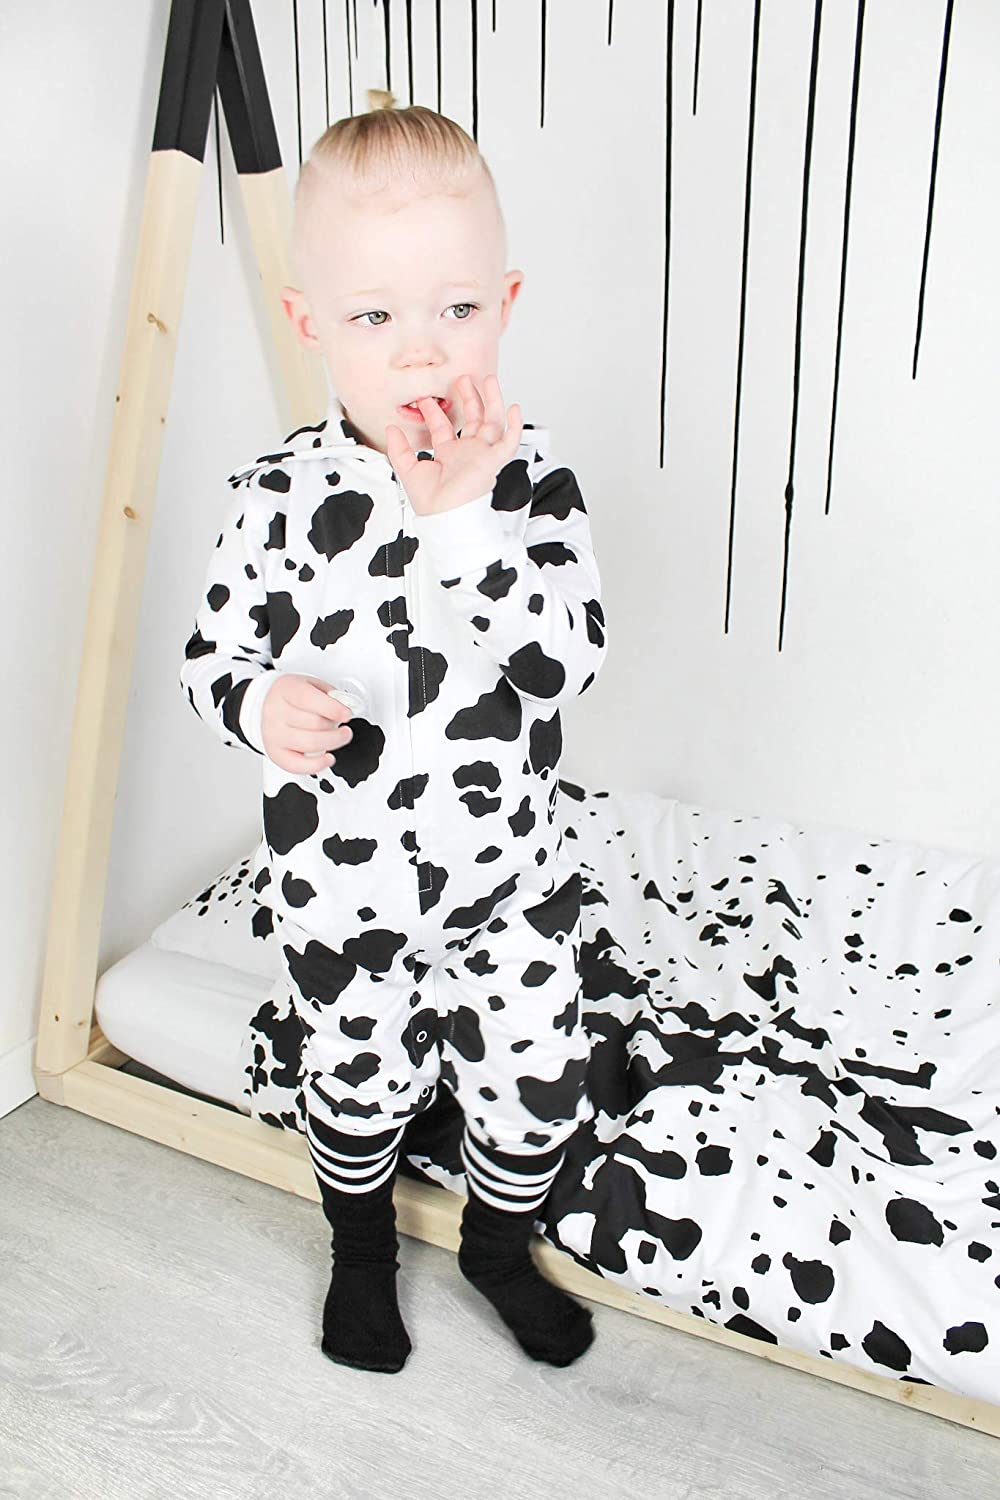 Baby Shower Gifts Boy or Girl 0-3 Months New Cow Costume Cute Baby Clothes or 1st Baby Gift | by BABY MOOS UK 1 Cute Cow Hooded Zip Onesie Suit Cow Baby Romper Outfit for Boys or Girls